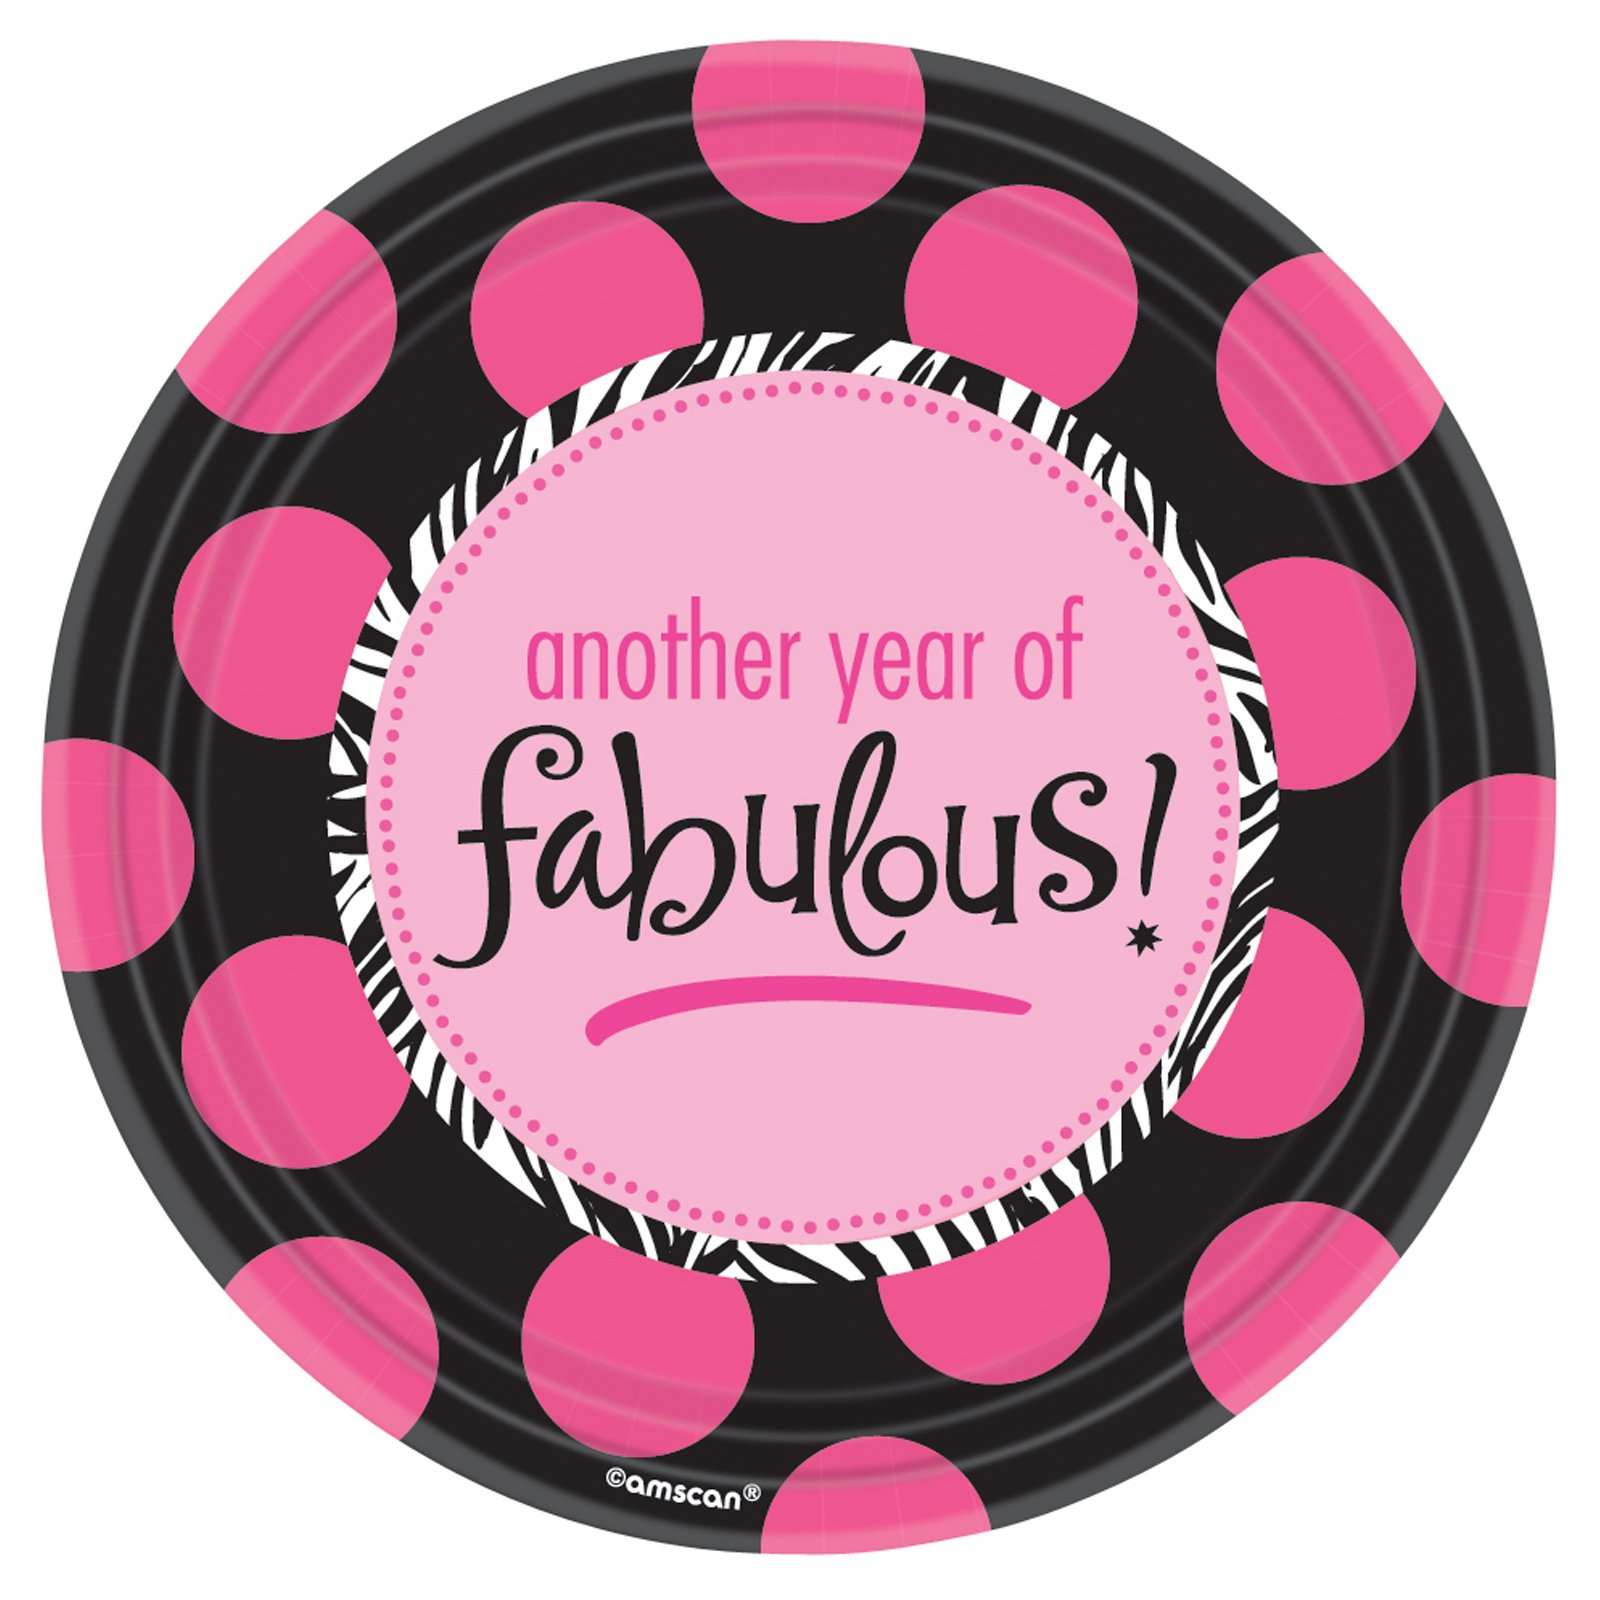 Another Year of Fabulous Dessert Plates (8 count)